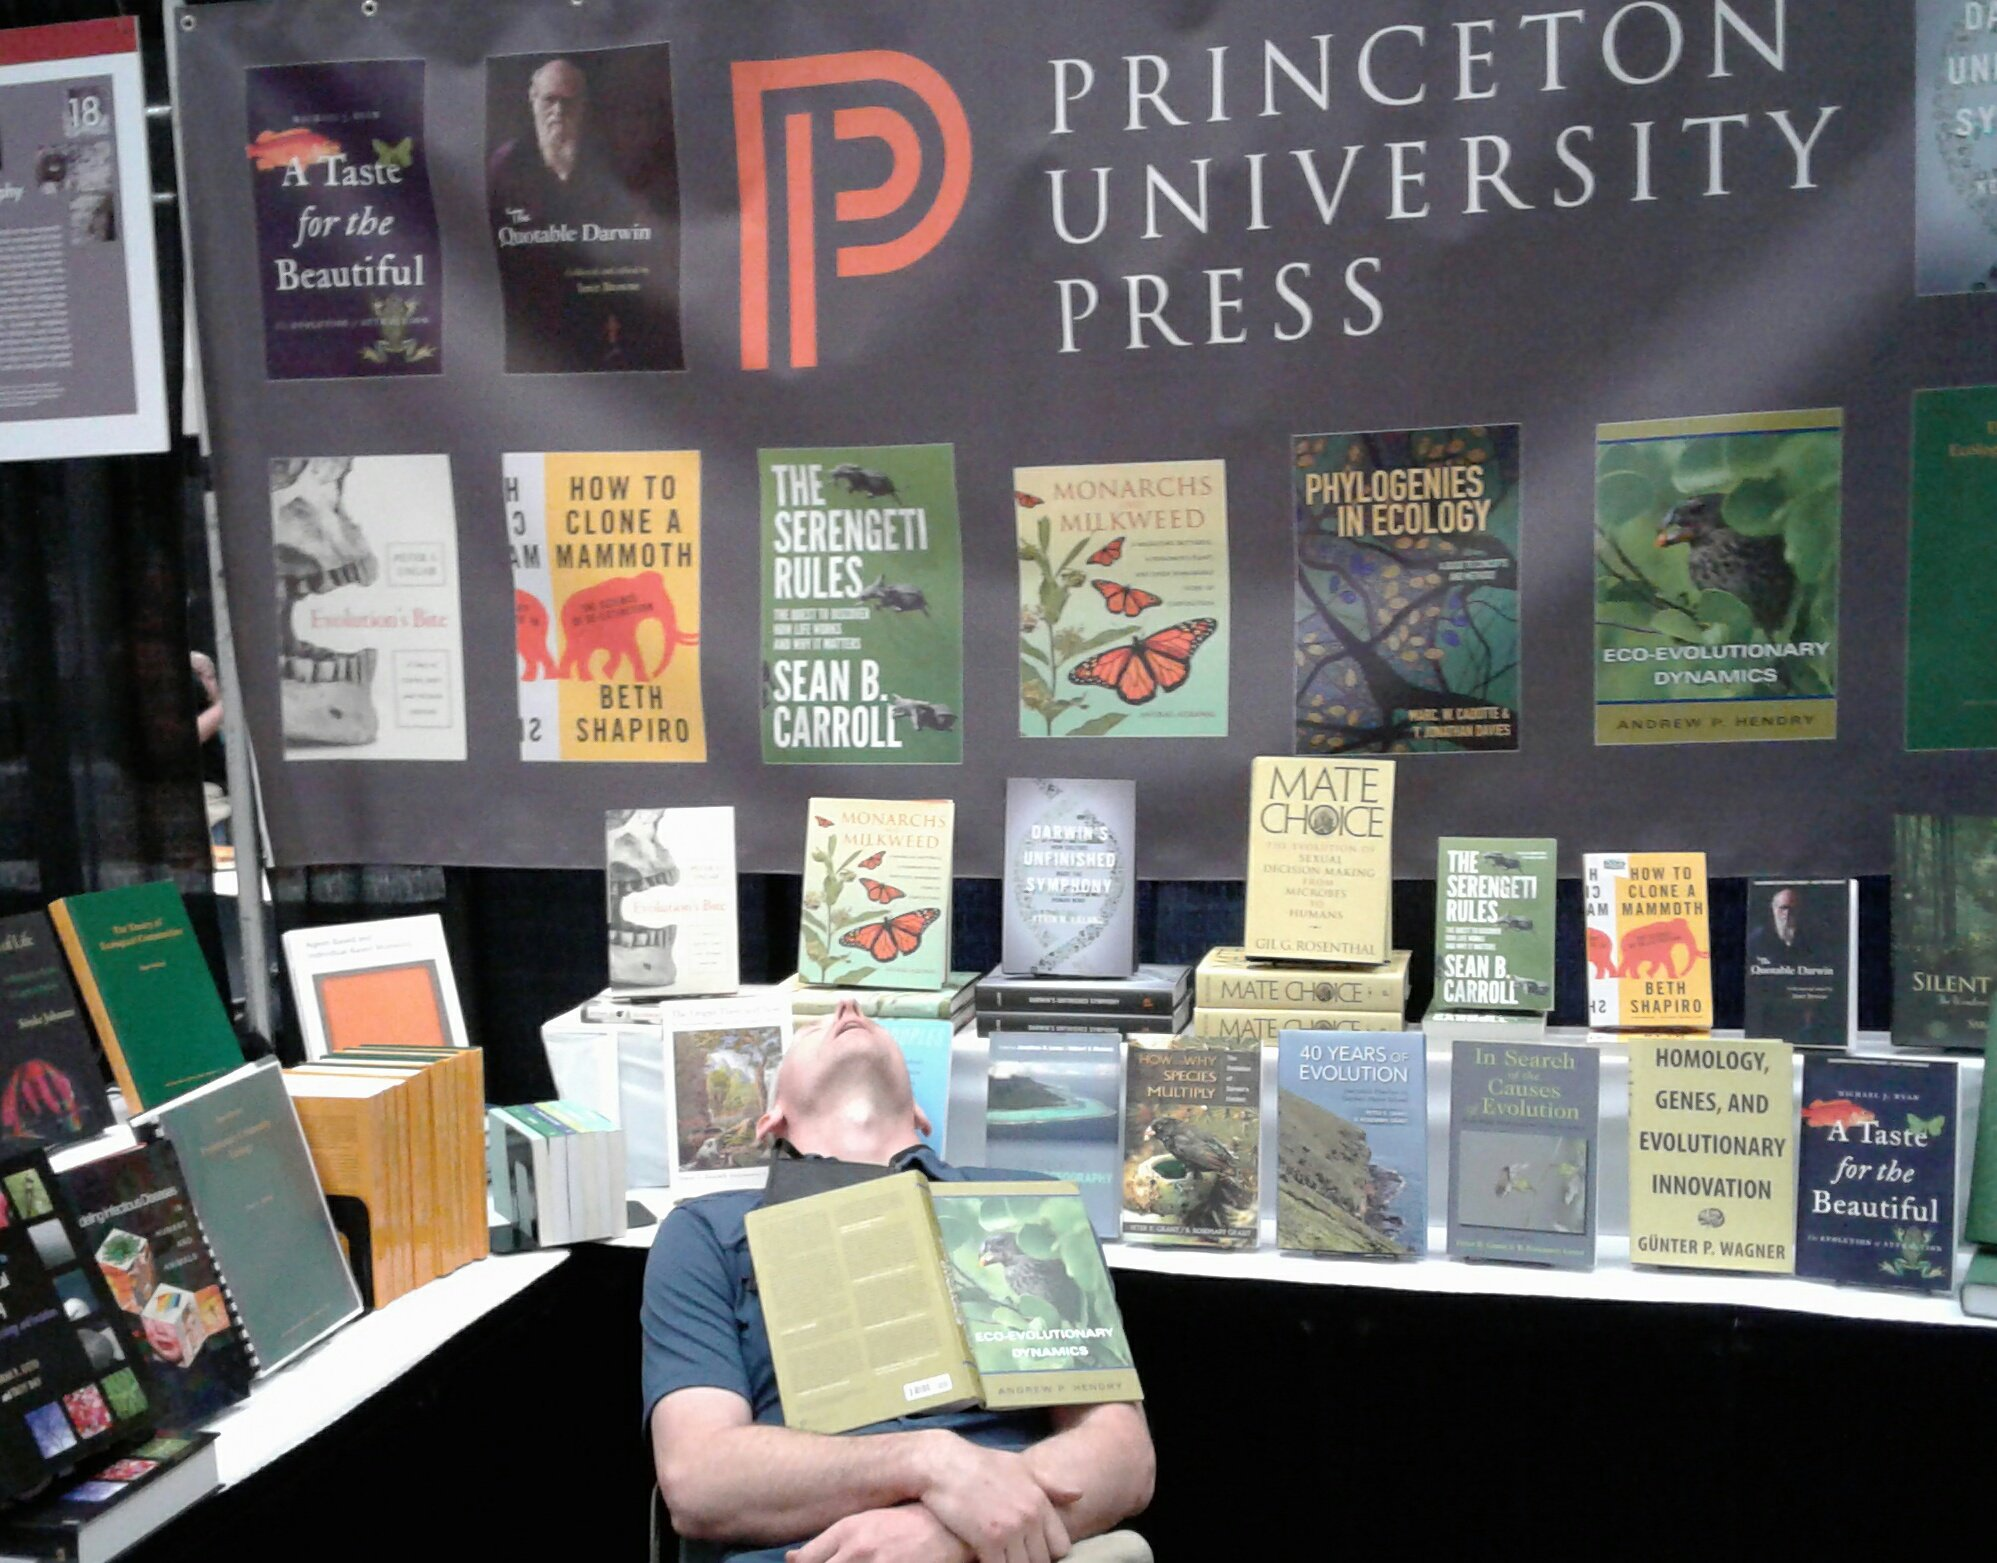 Stopped by the @PrincetonUPress booth at #evol2017 to check out the great new books. You should too! #PeopleWhoFellAsleepReadingMyBook https://t.co/iLkZN3HOmP